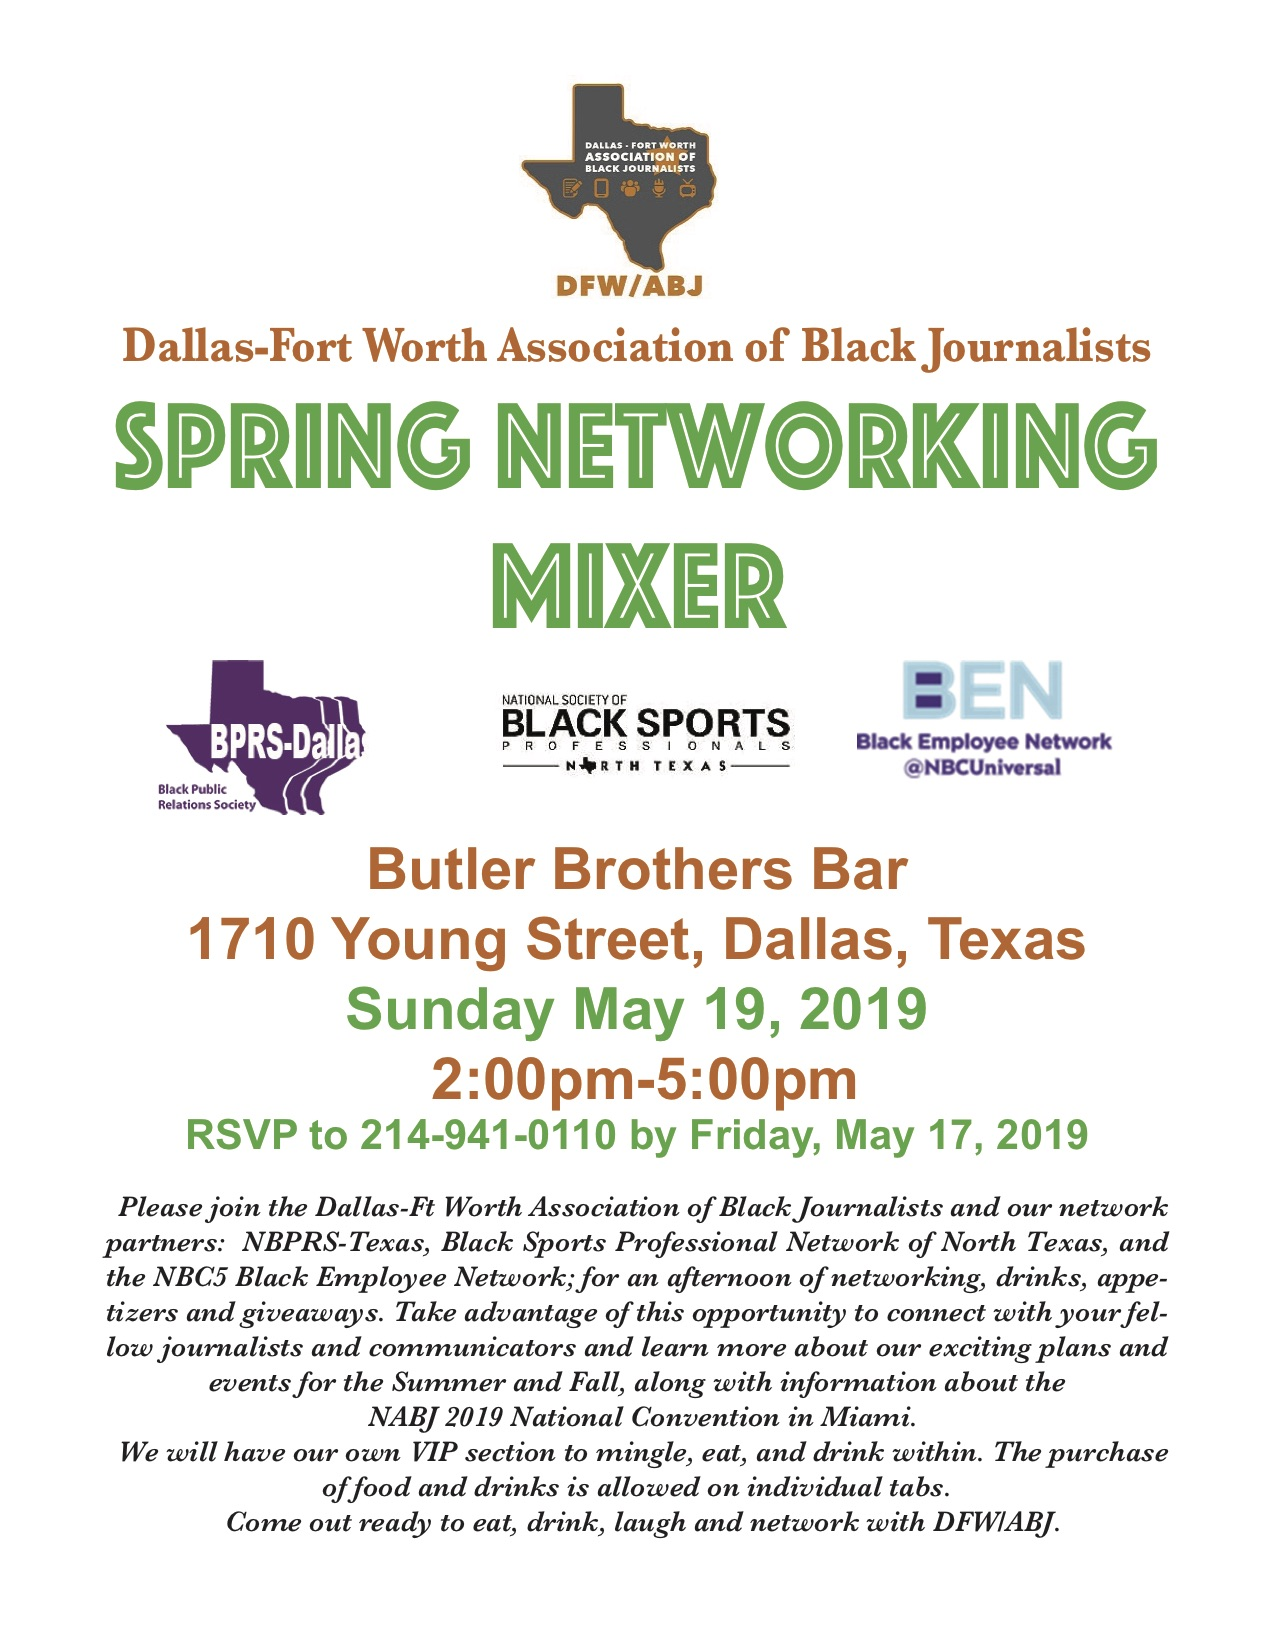 DFW/ABJ Spring Networking Mixer: May 19, 2019